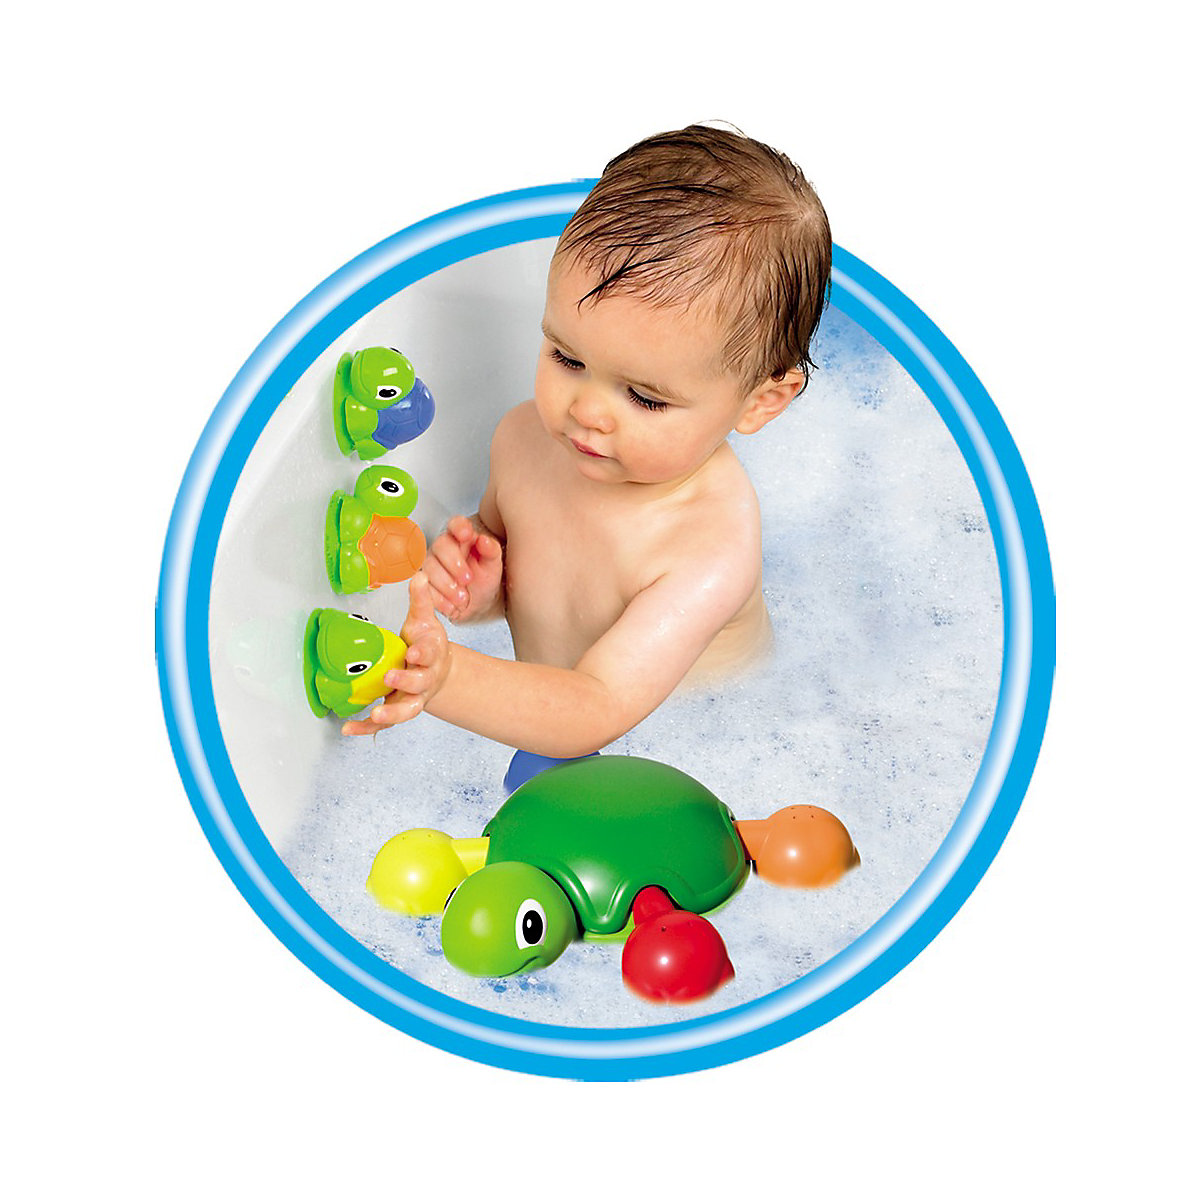 Bath Toy TOMY 3232813 Bathing Bath toys for bathroom on suckers Rubber Duck Doll Kids bath toy tomy 4599020 bathing bath toys for bathroom on suckers rubber duck doll kids